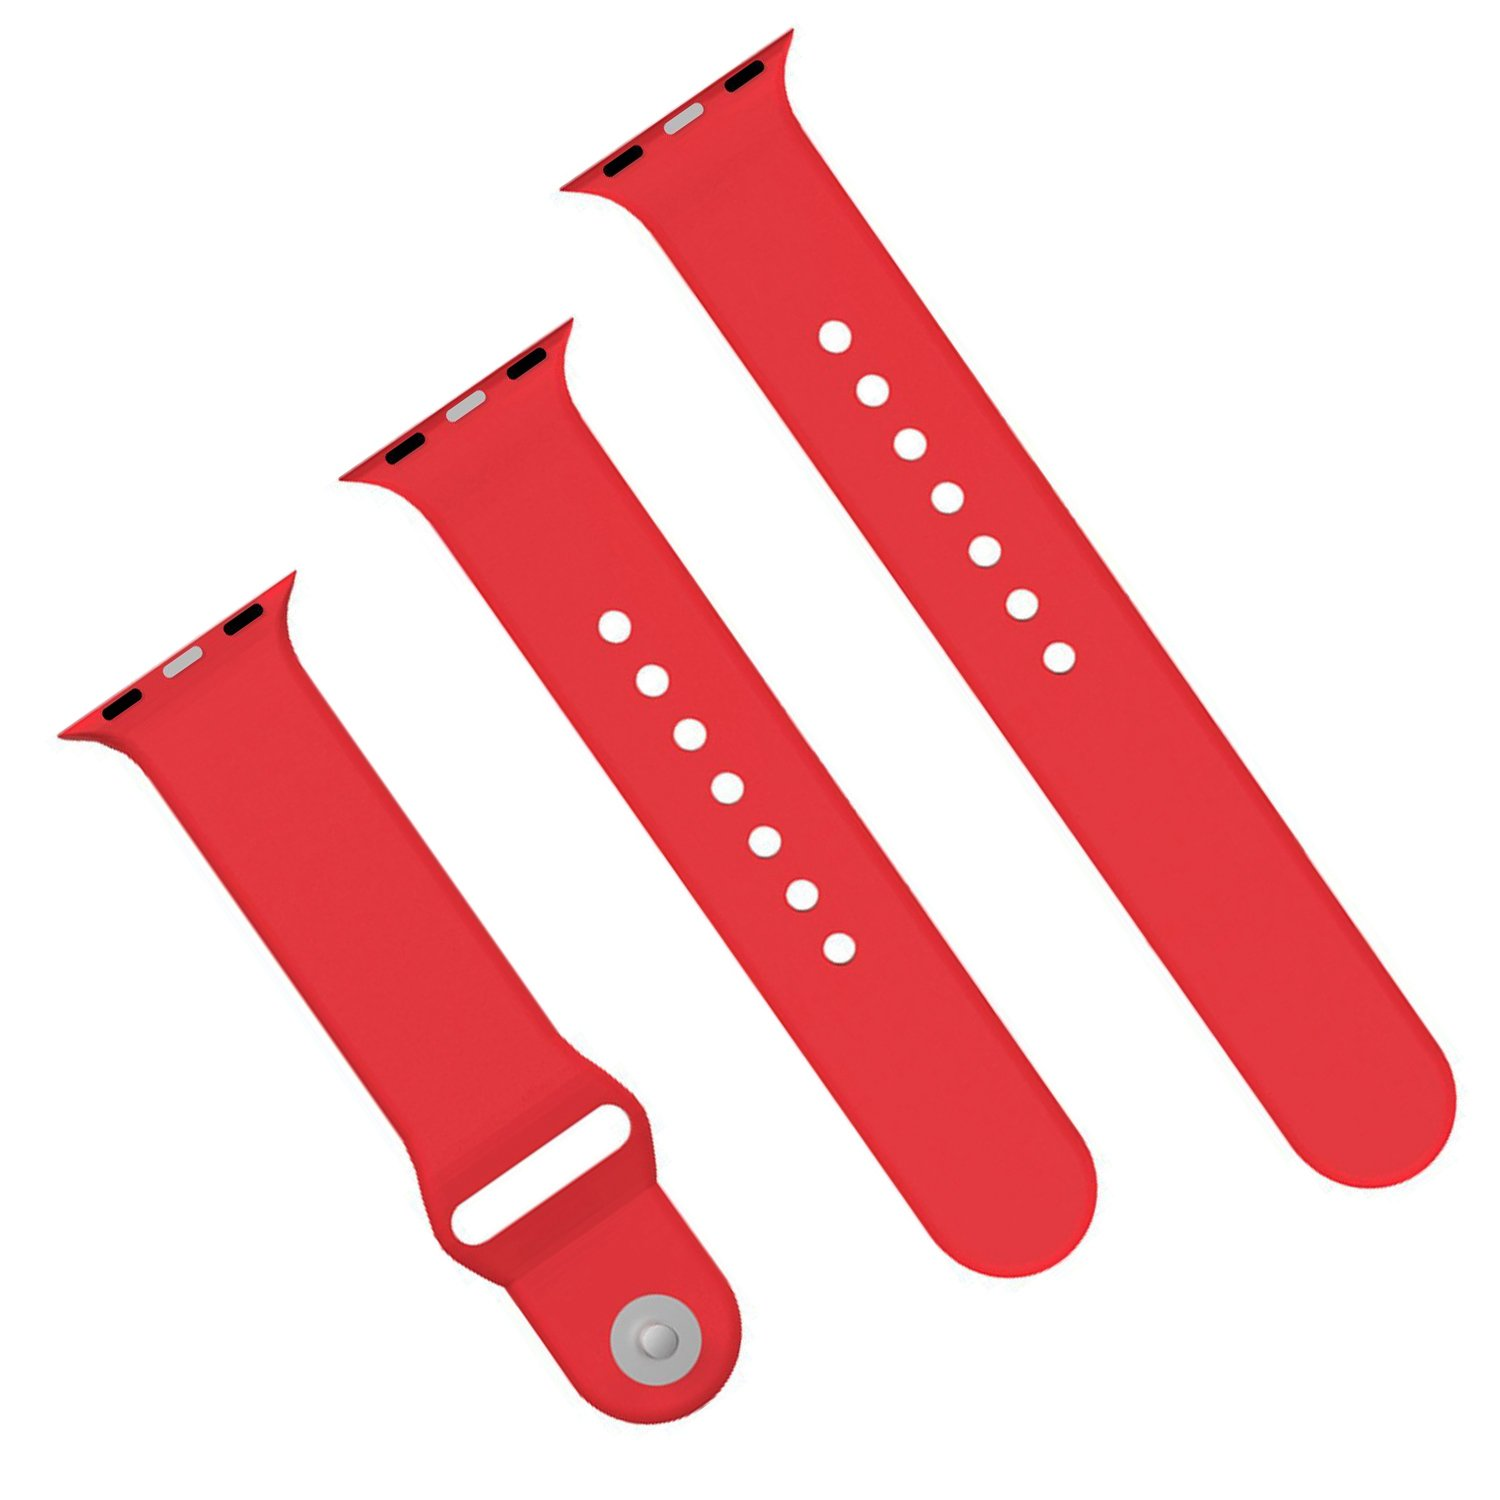 XIYA Soft Silicone Replacement Sport Band for Apple Watch for 2 Lengths, Red,42mm